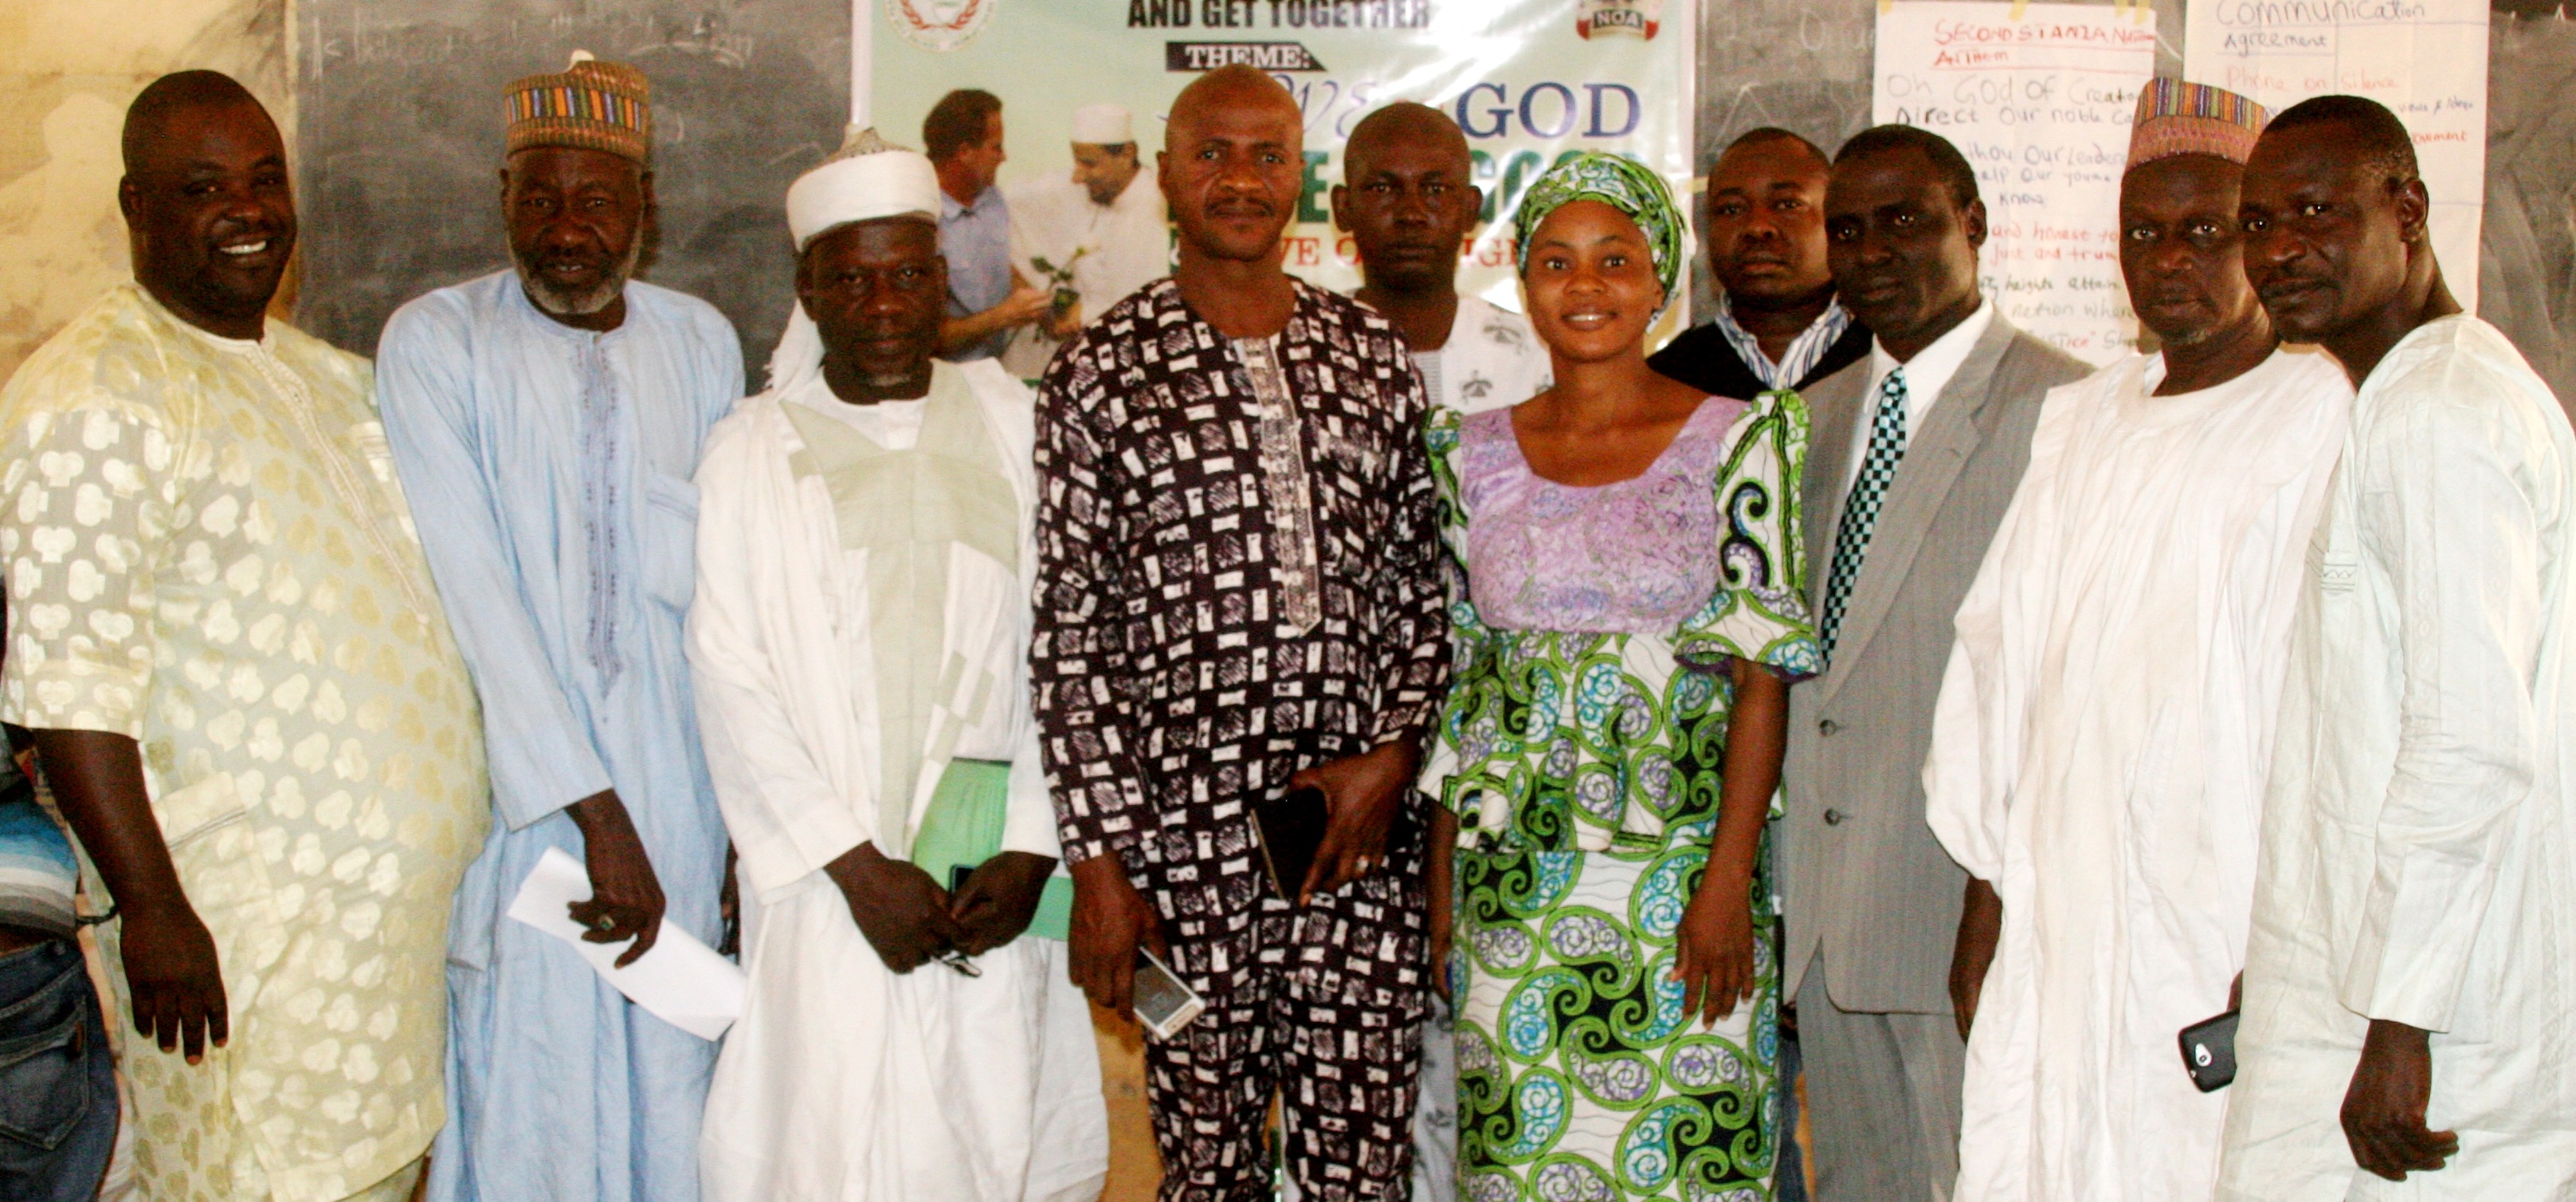 Religiou leaders with CPAED Team.JPG